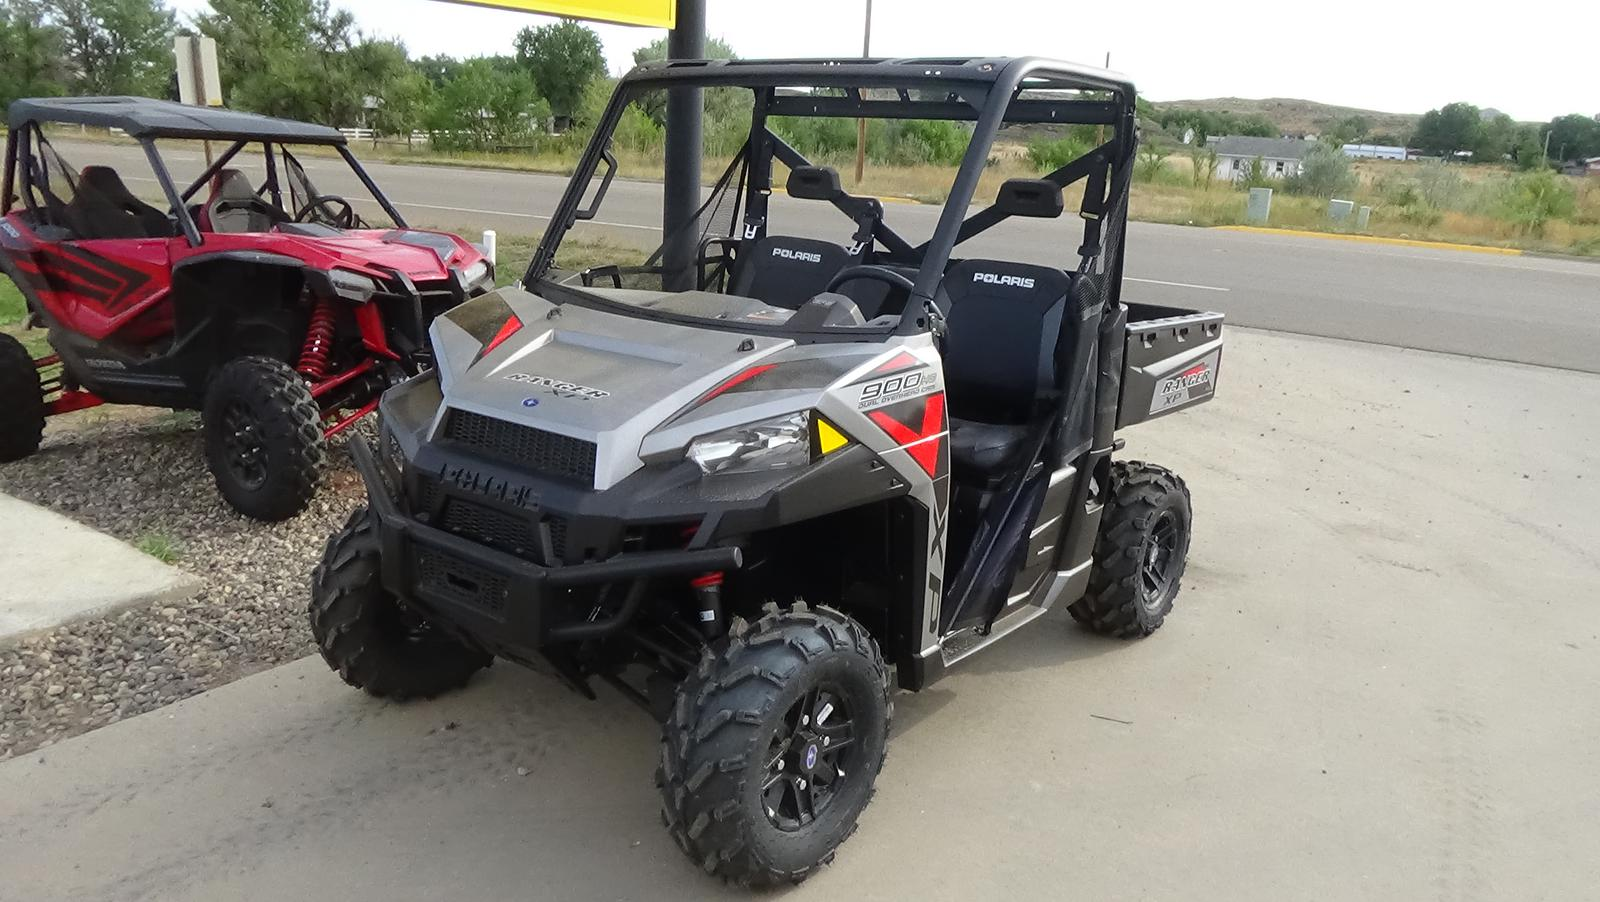 2019 polaris industries ranger xp� 900 eps - silver pearl